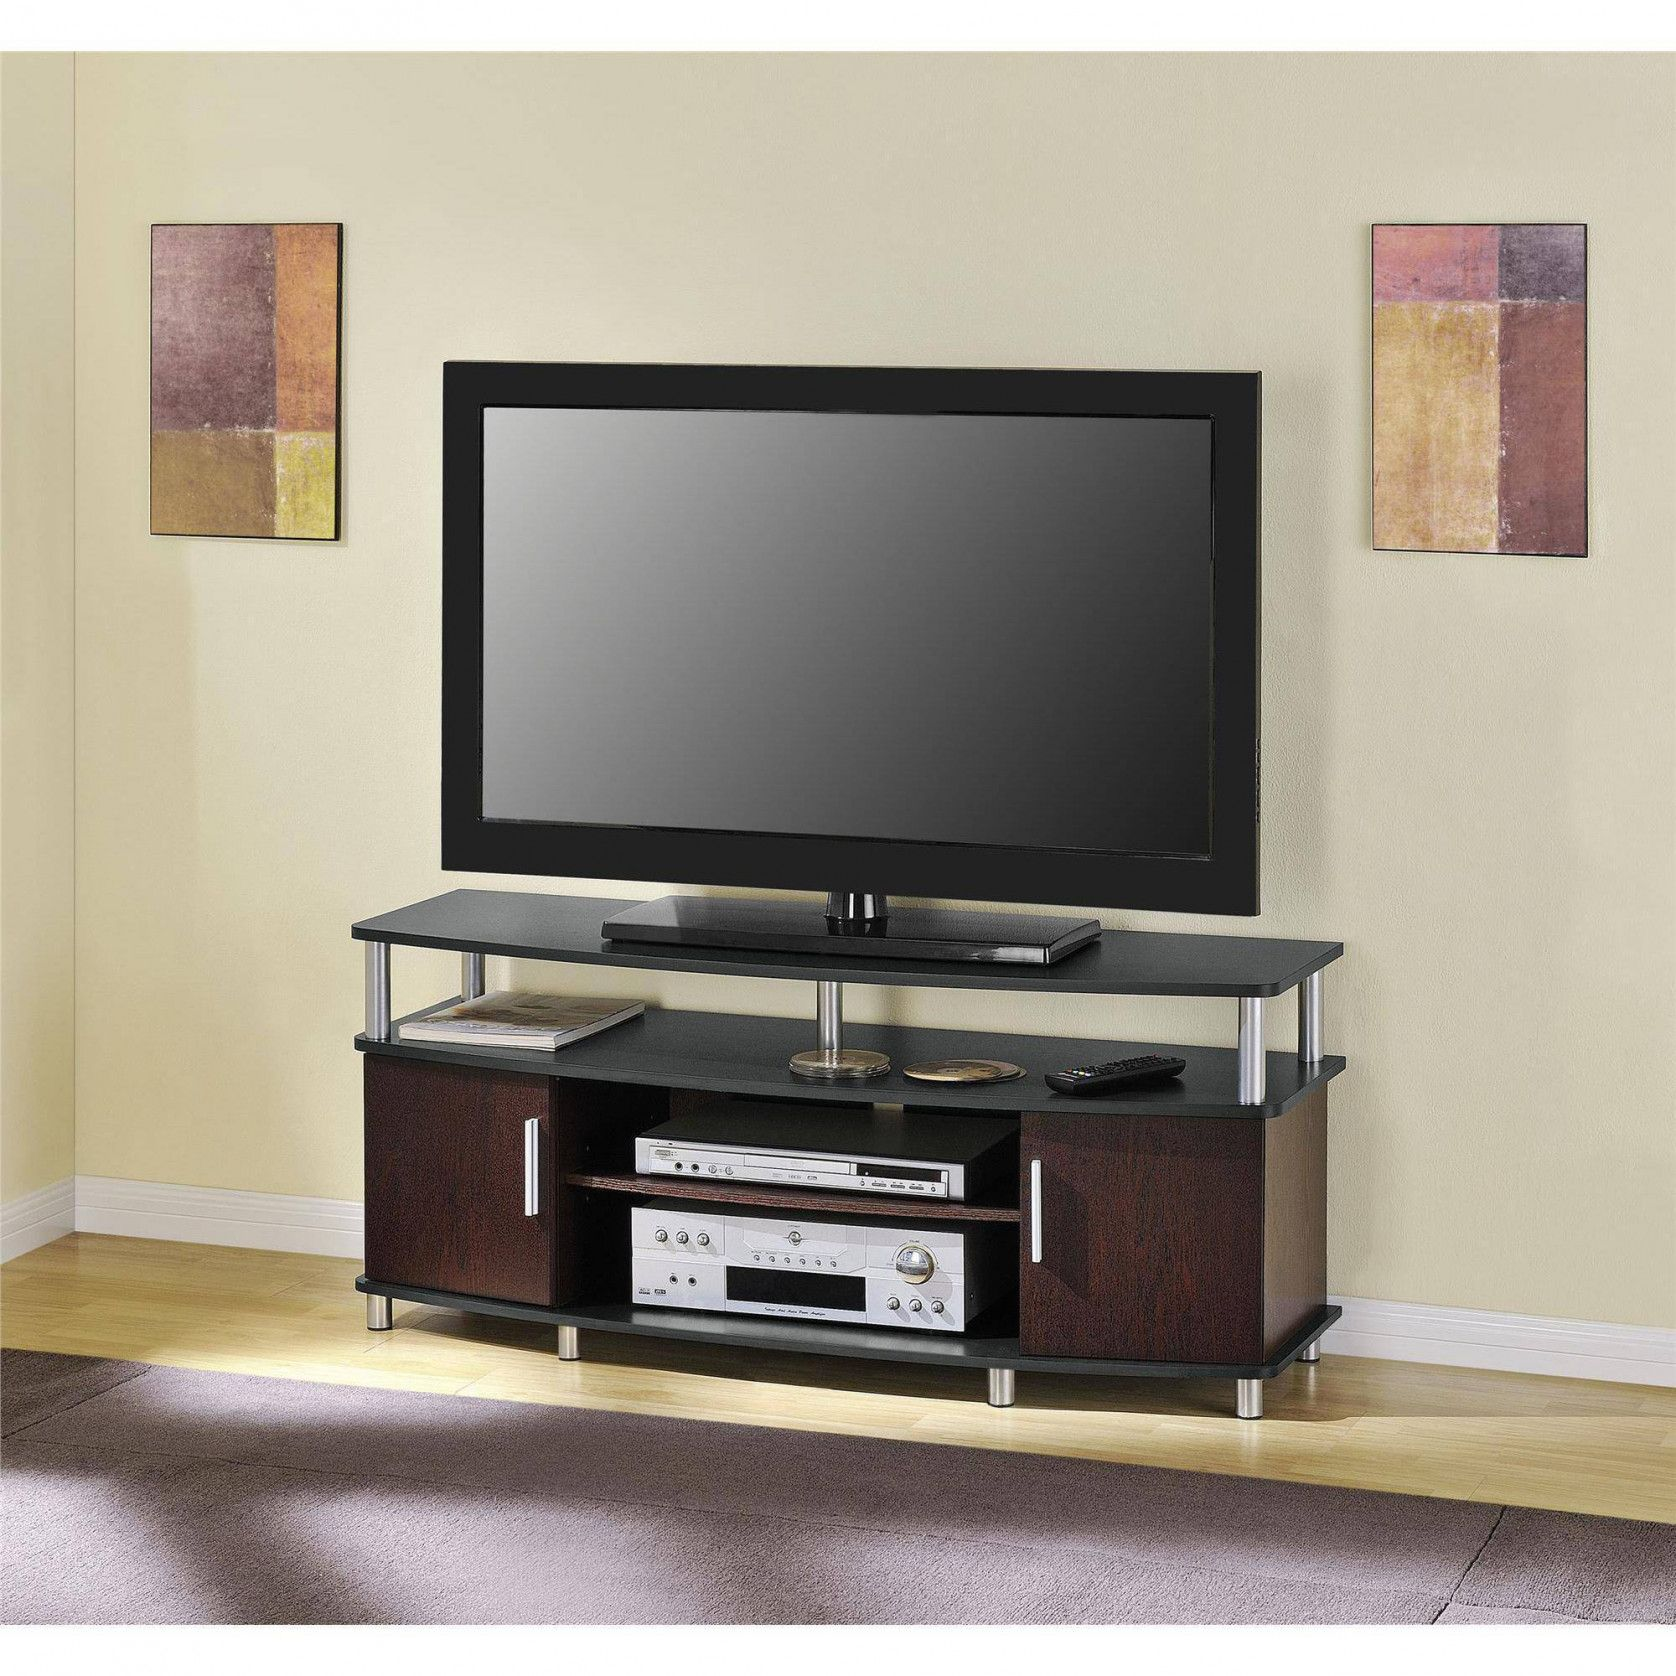 99 Large Tv Cabinets Flat Screens Kitchen Decor Theme Ideas Check More At Http